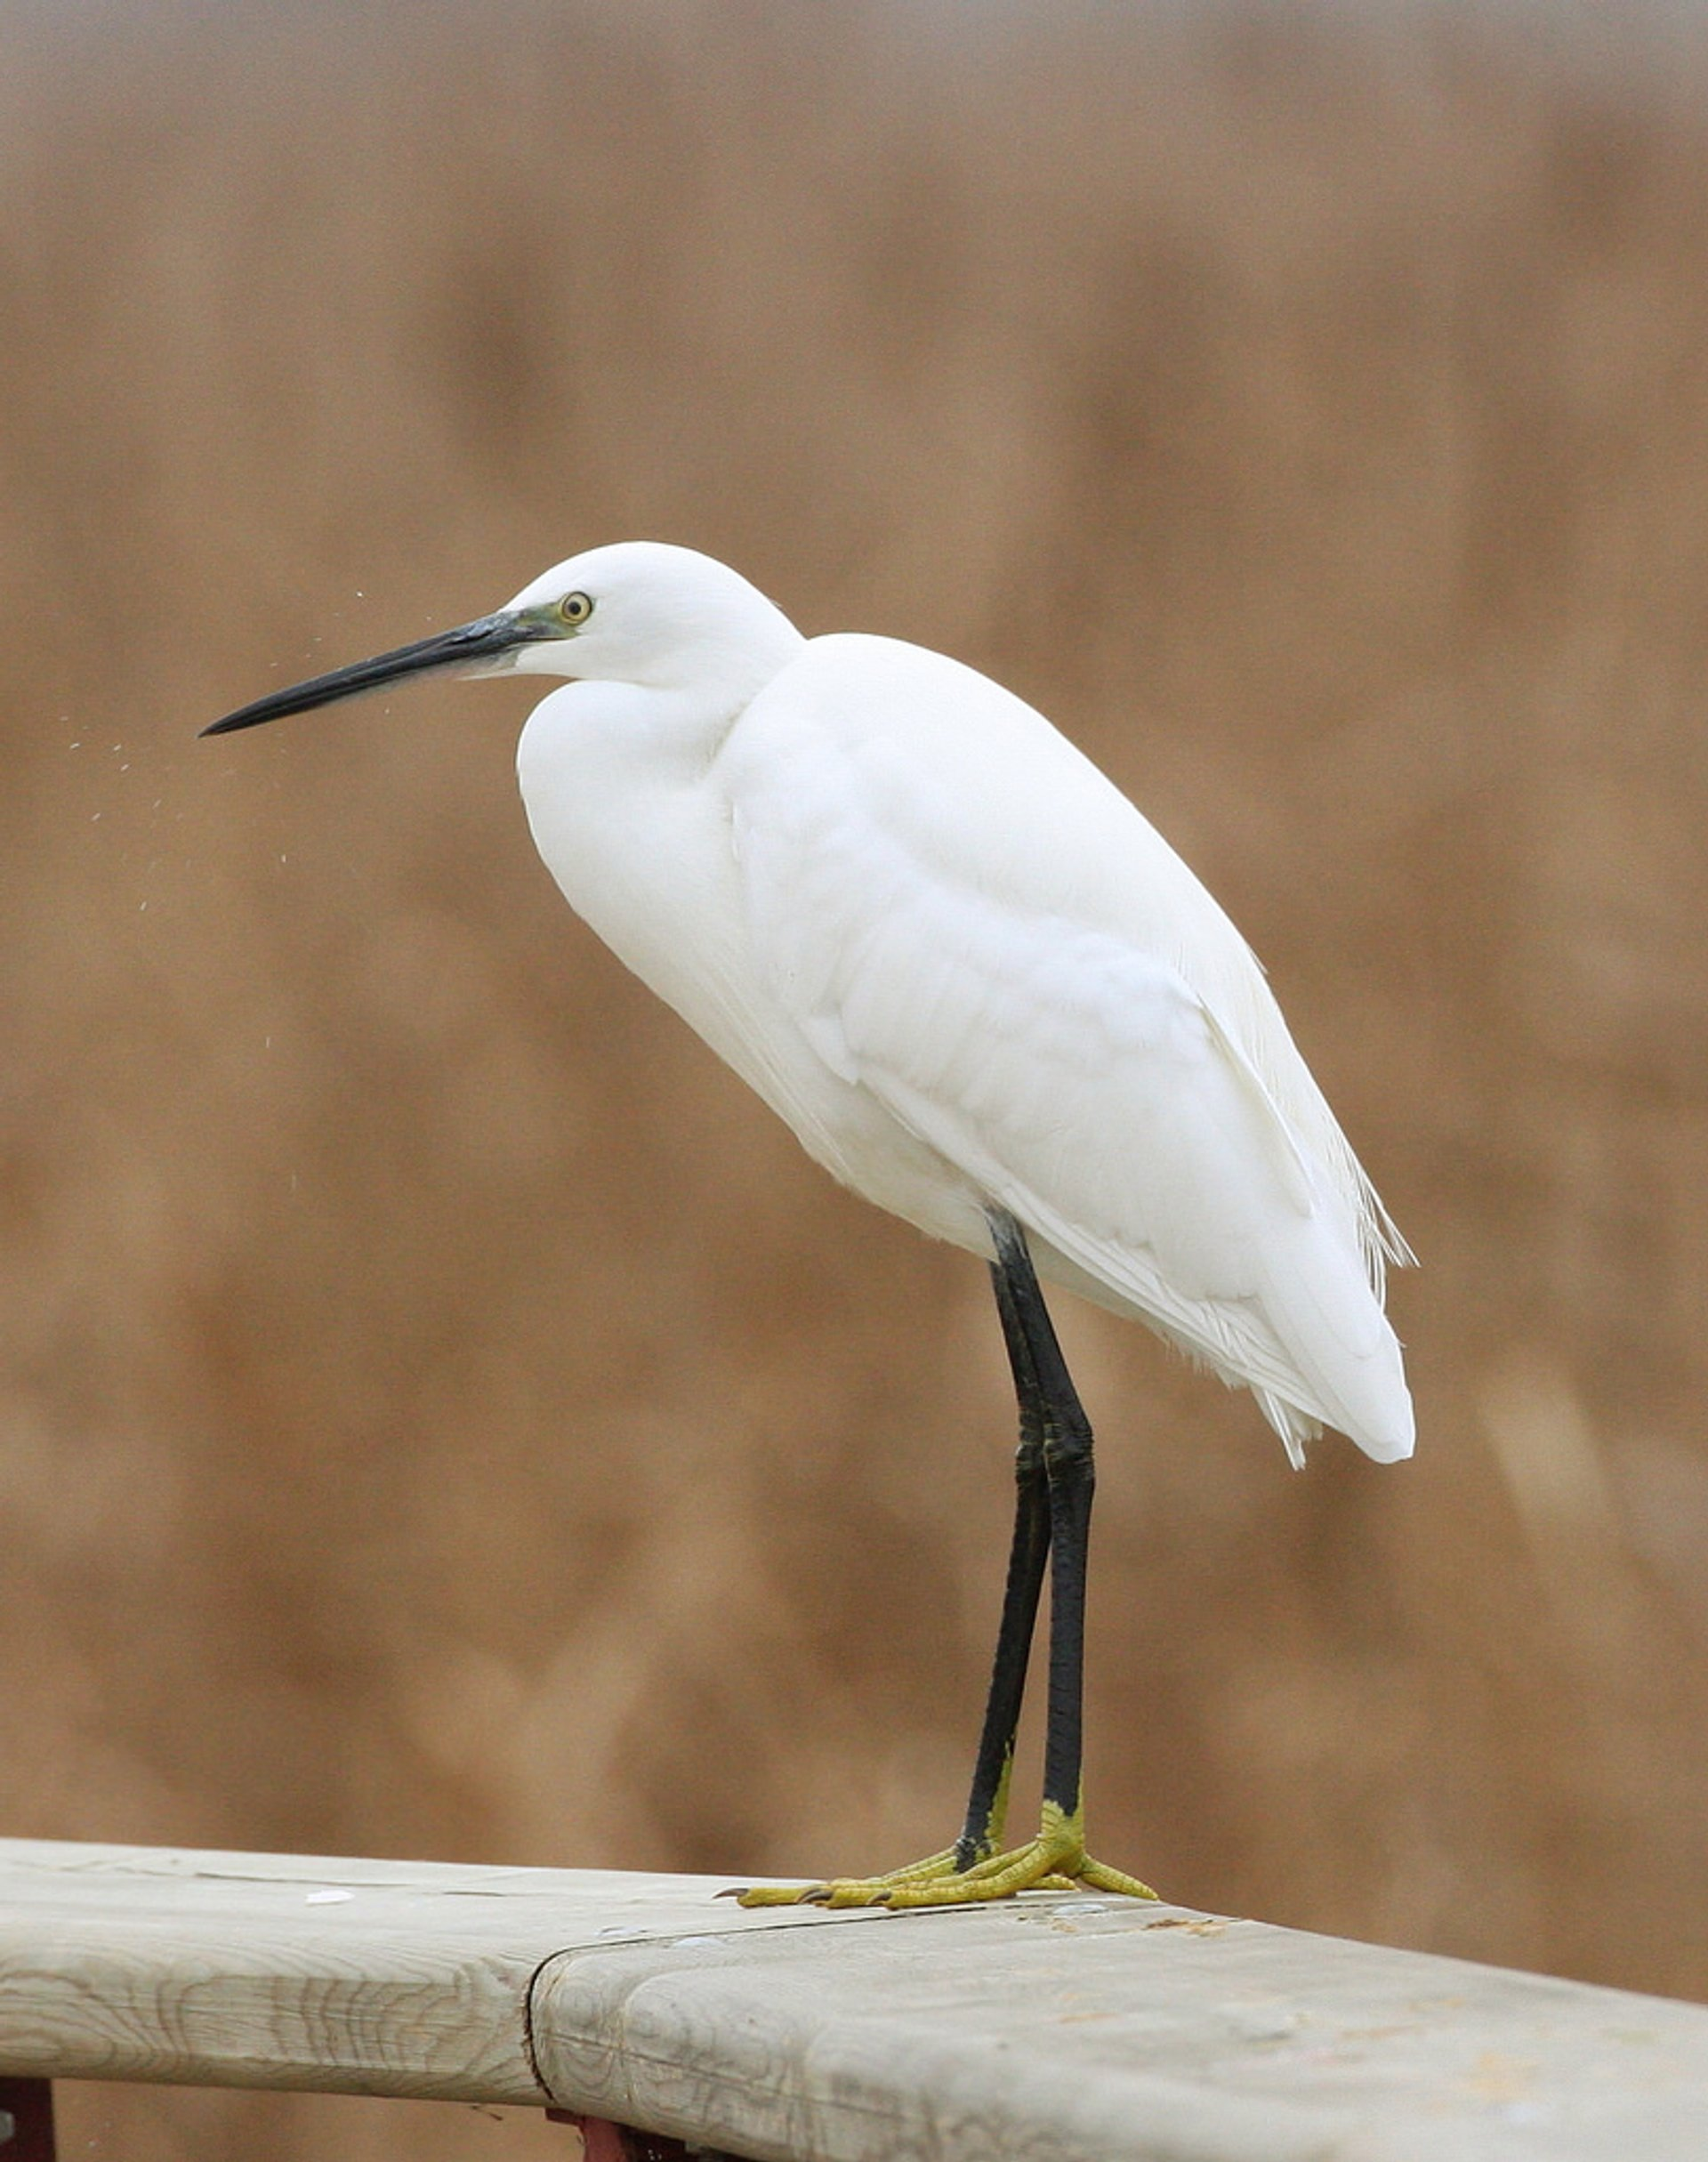 Little Egret in Tablas de Daimiel National Park, Ciudad Real 2020